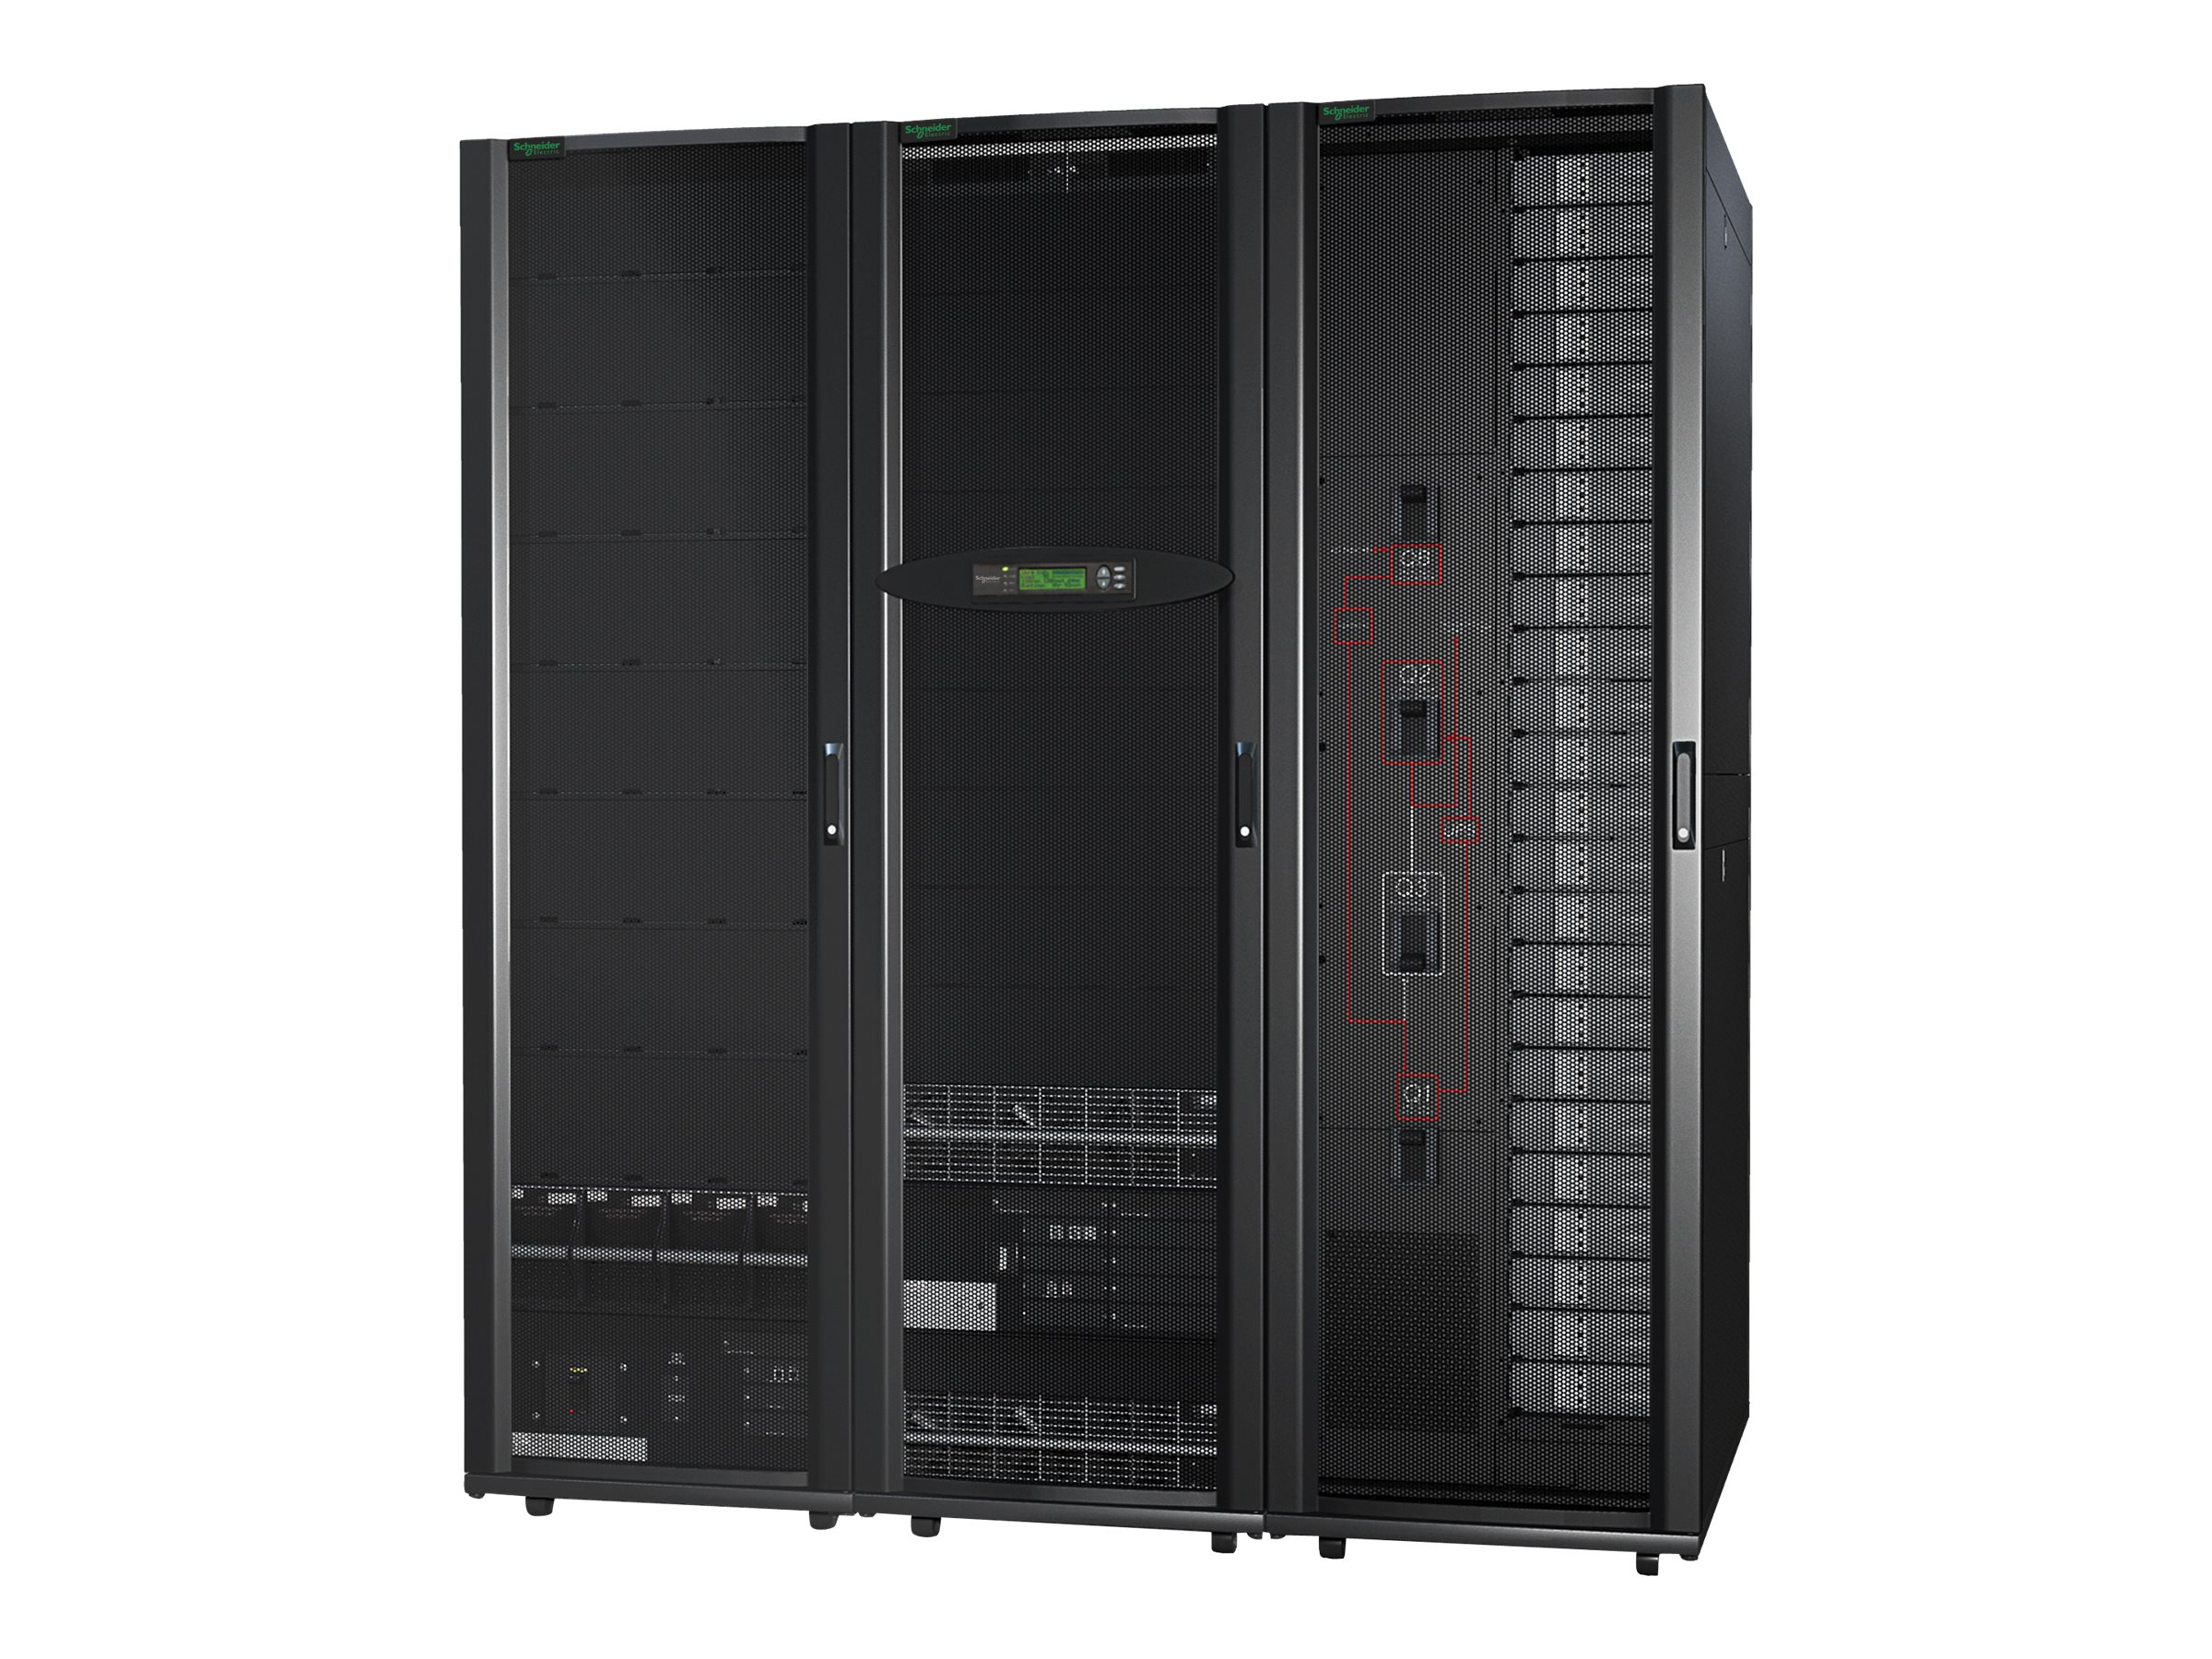 APC Symmetra PX 10kVA 10kW Scalable to 100kW N+1, 208V w  Startup, SY10K100F, 30811699, Battery Backup/UPS